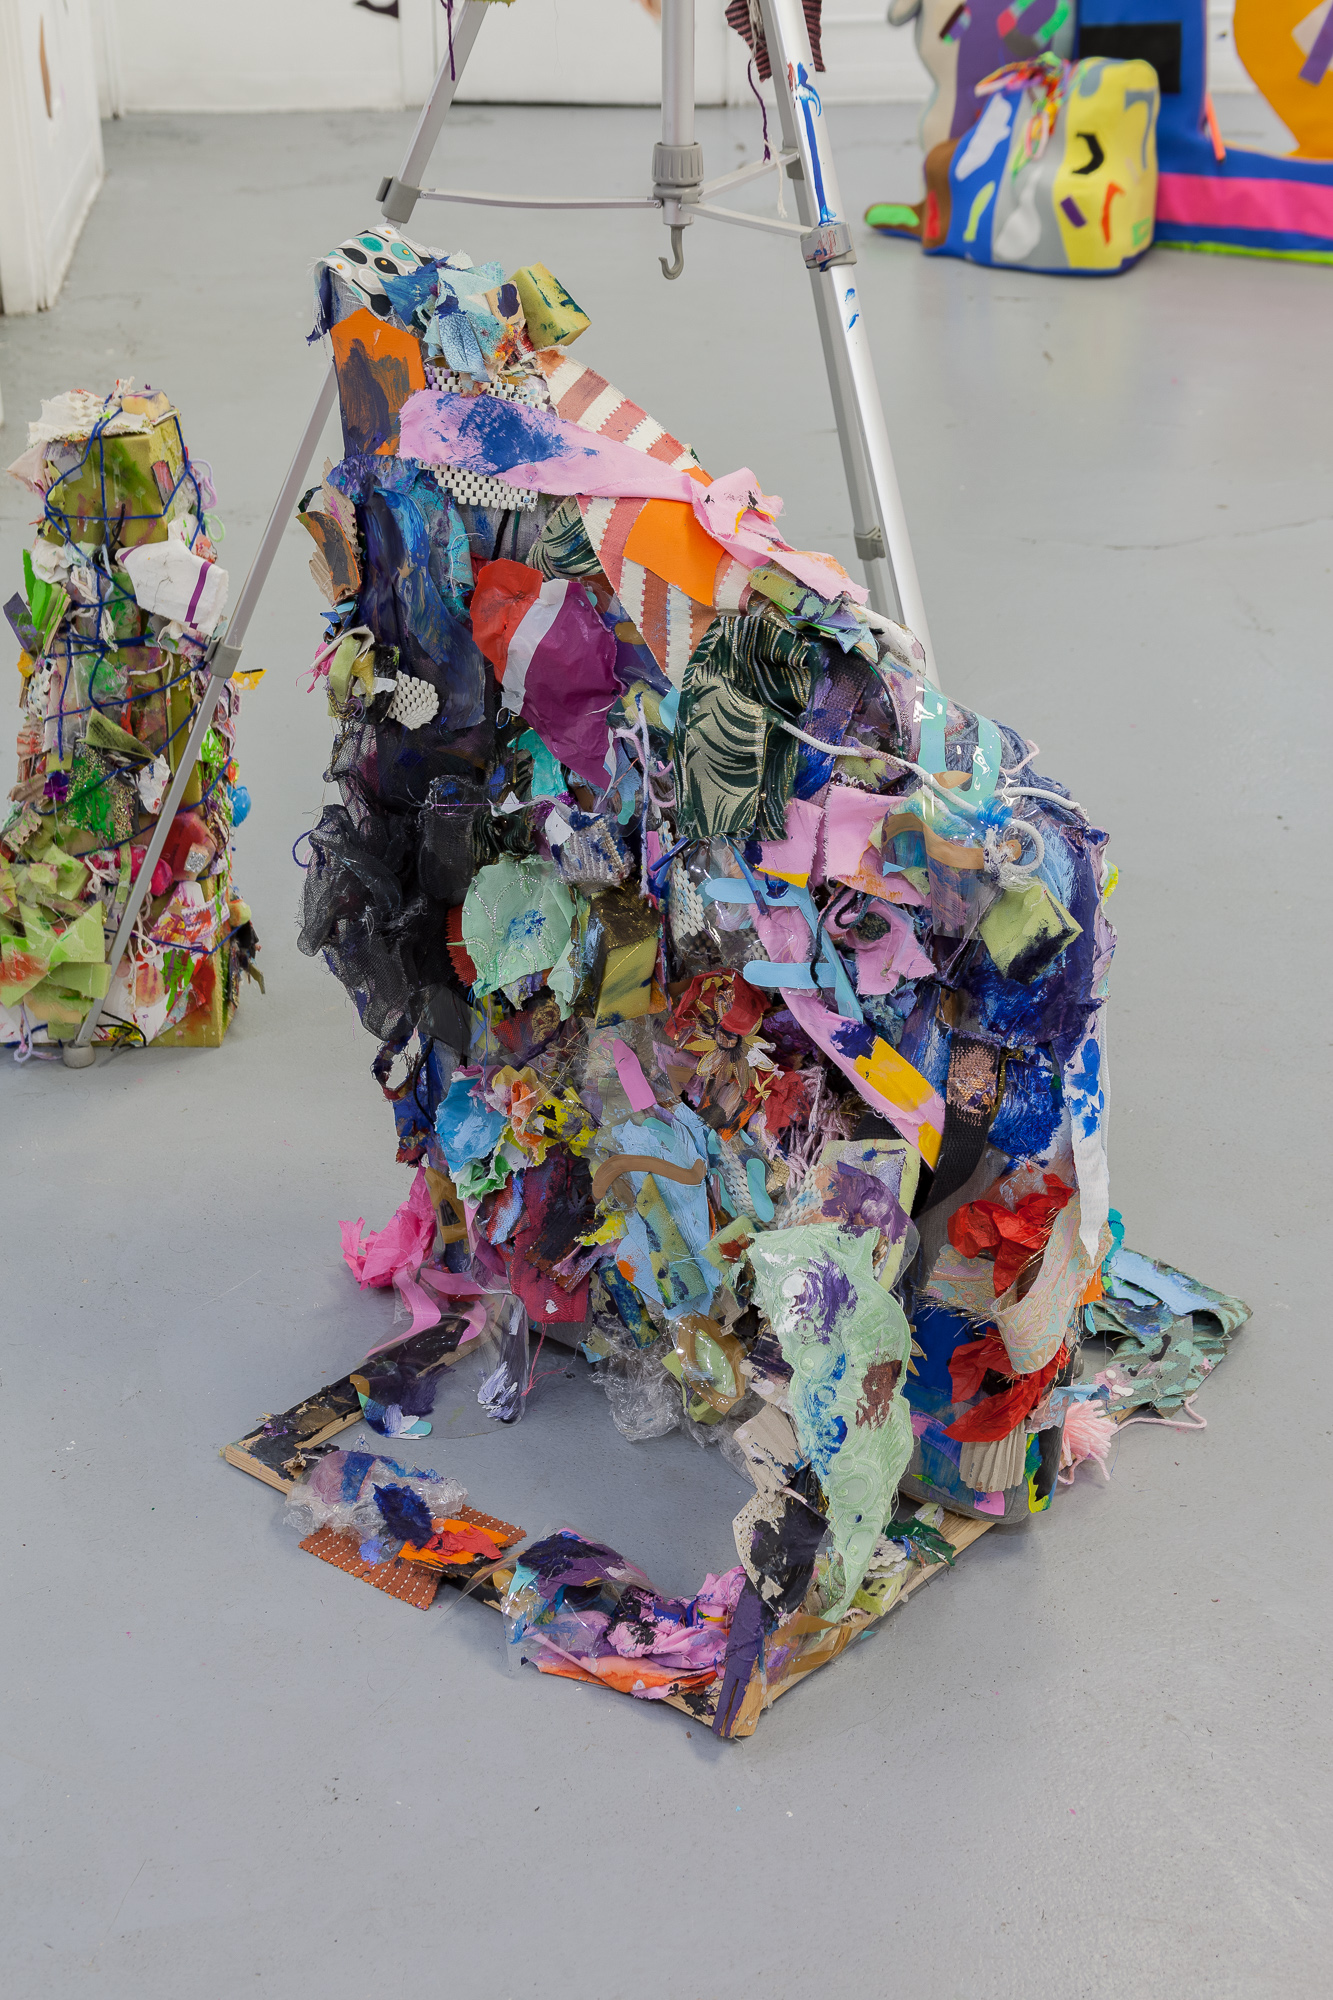 Hubert Posey,  Untitled 1-3 , 2017-2018, Mixed Media Sculptures, Dimensions variable